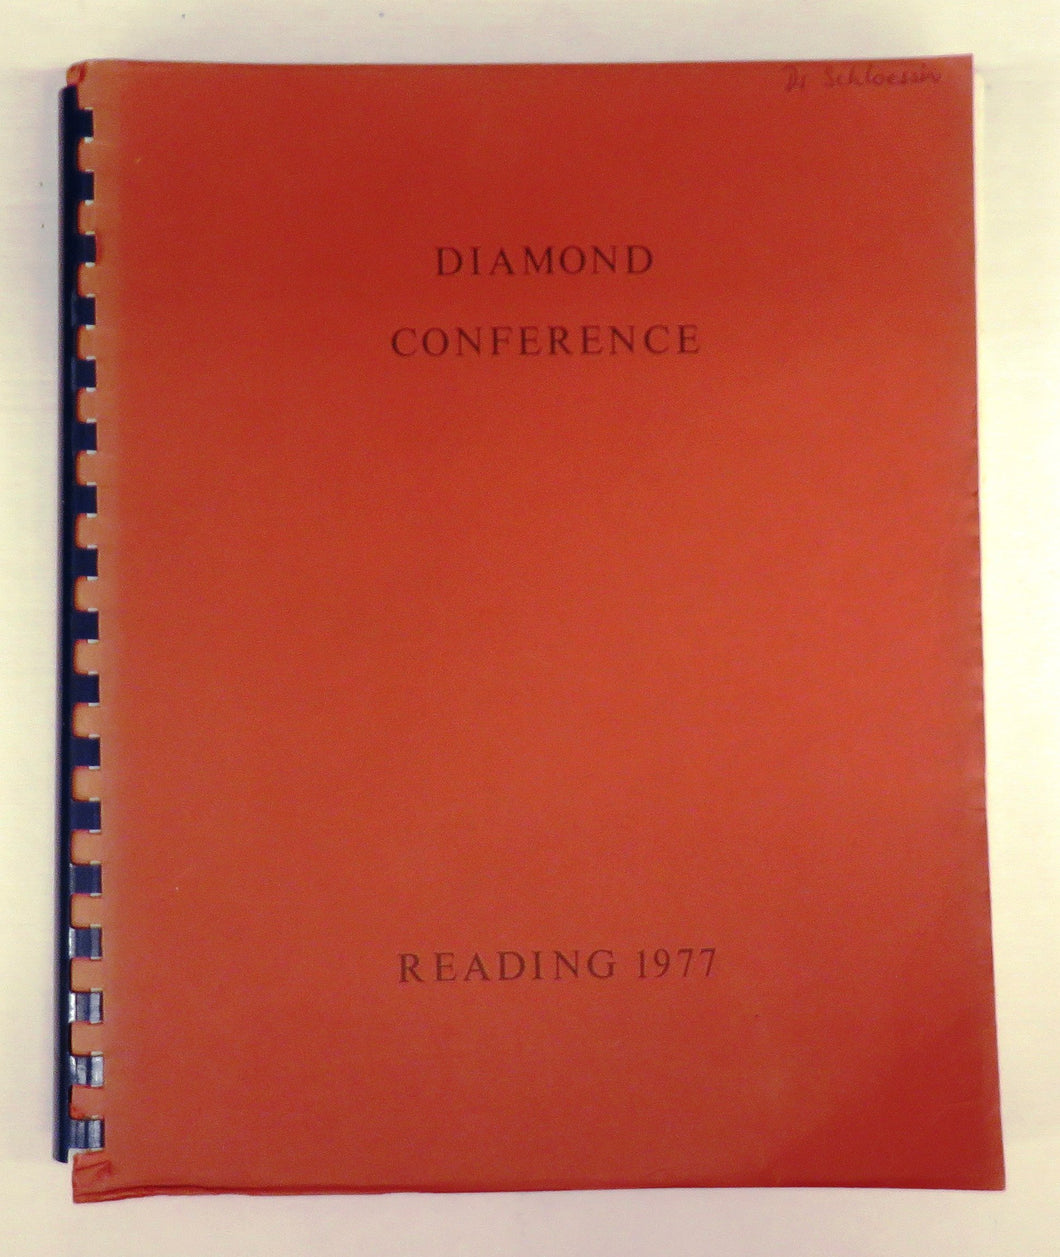 Diamond Conference: Reading 1977